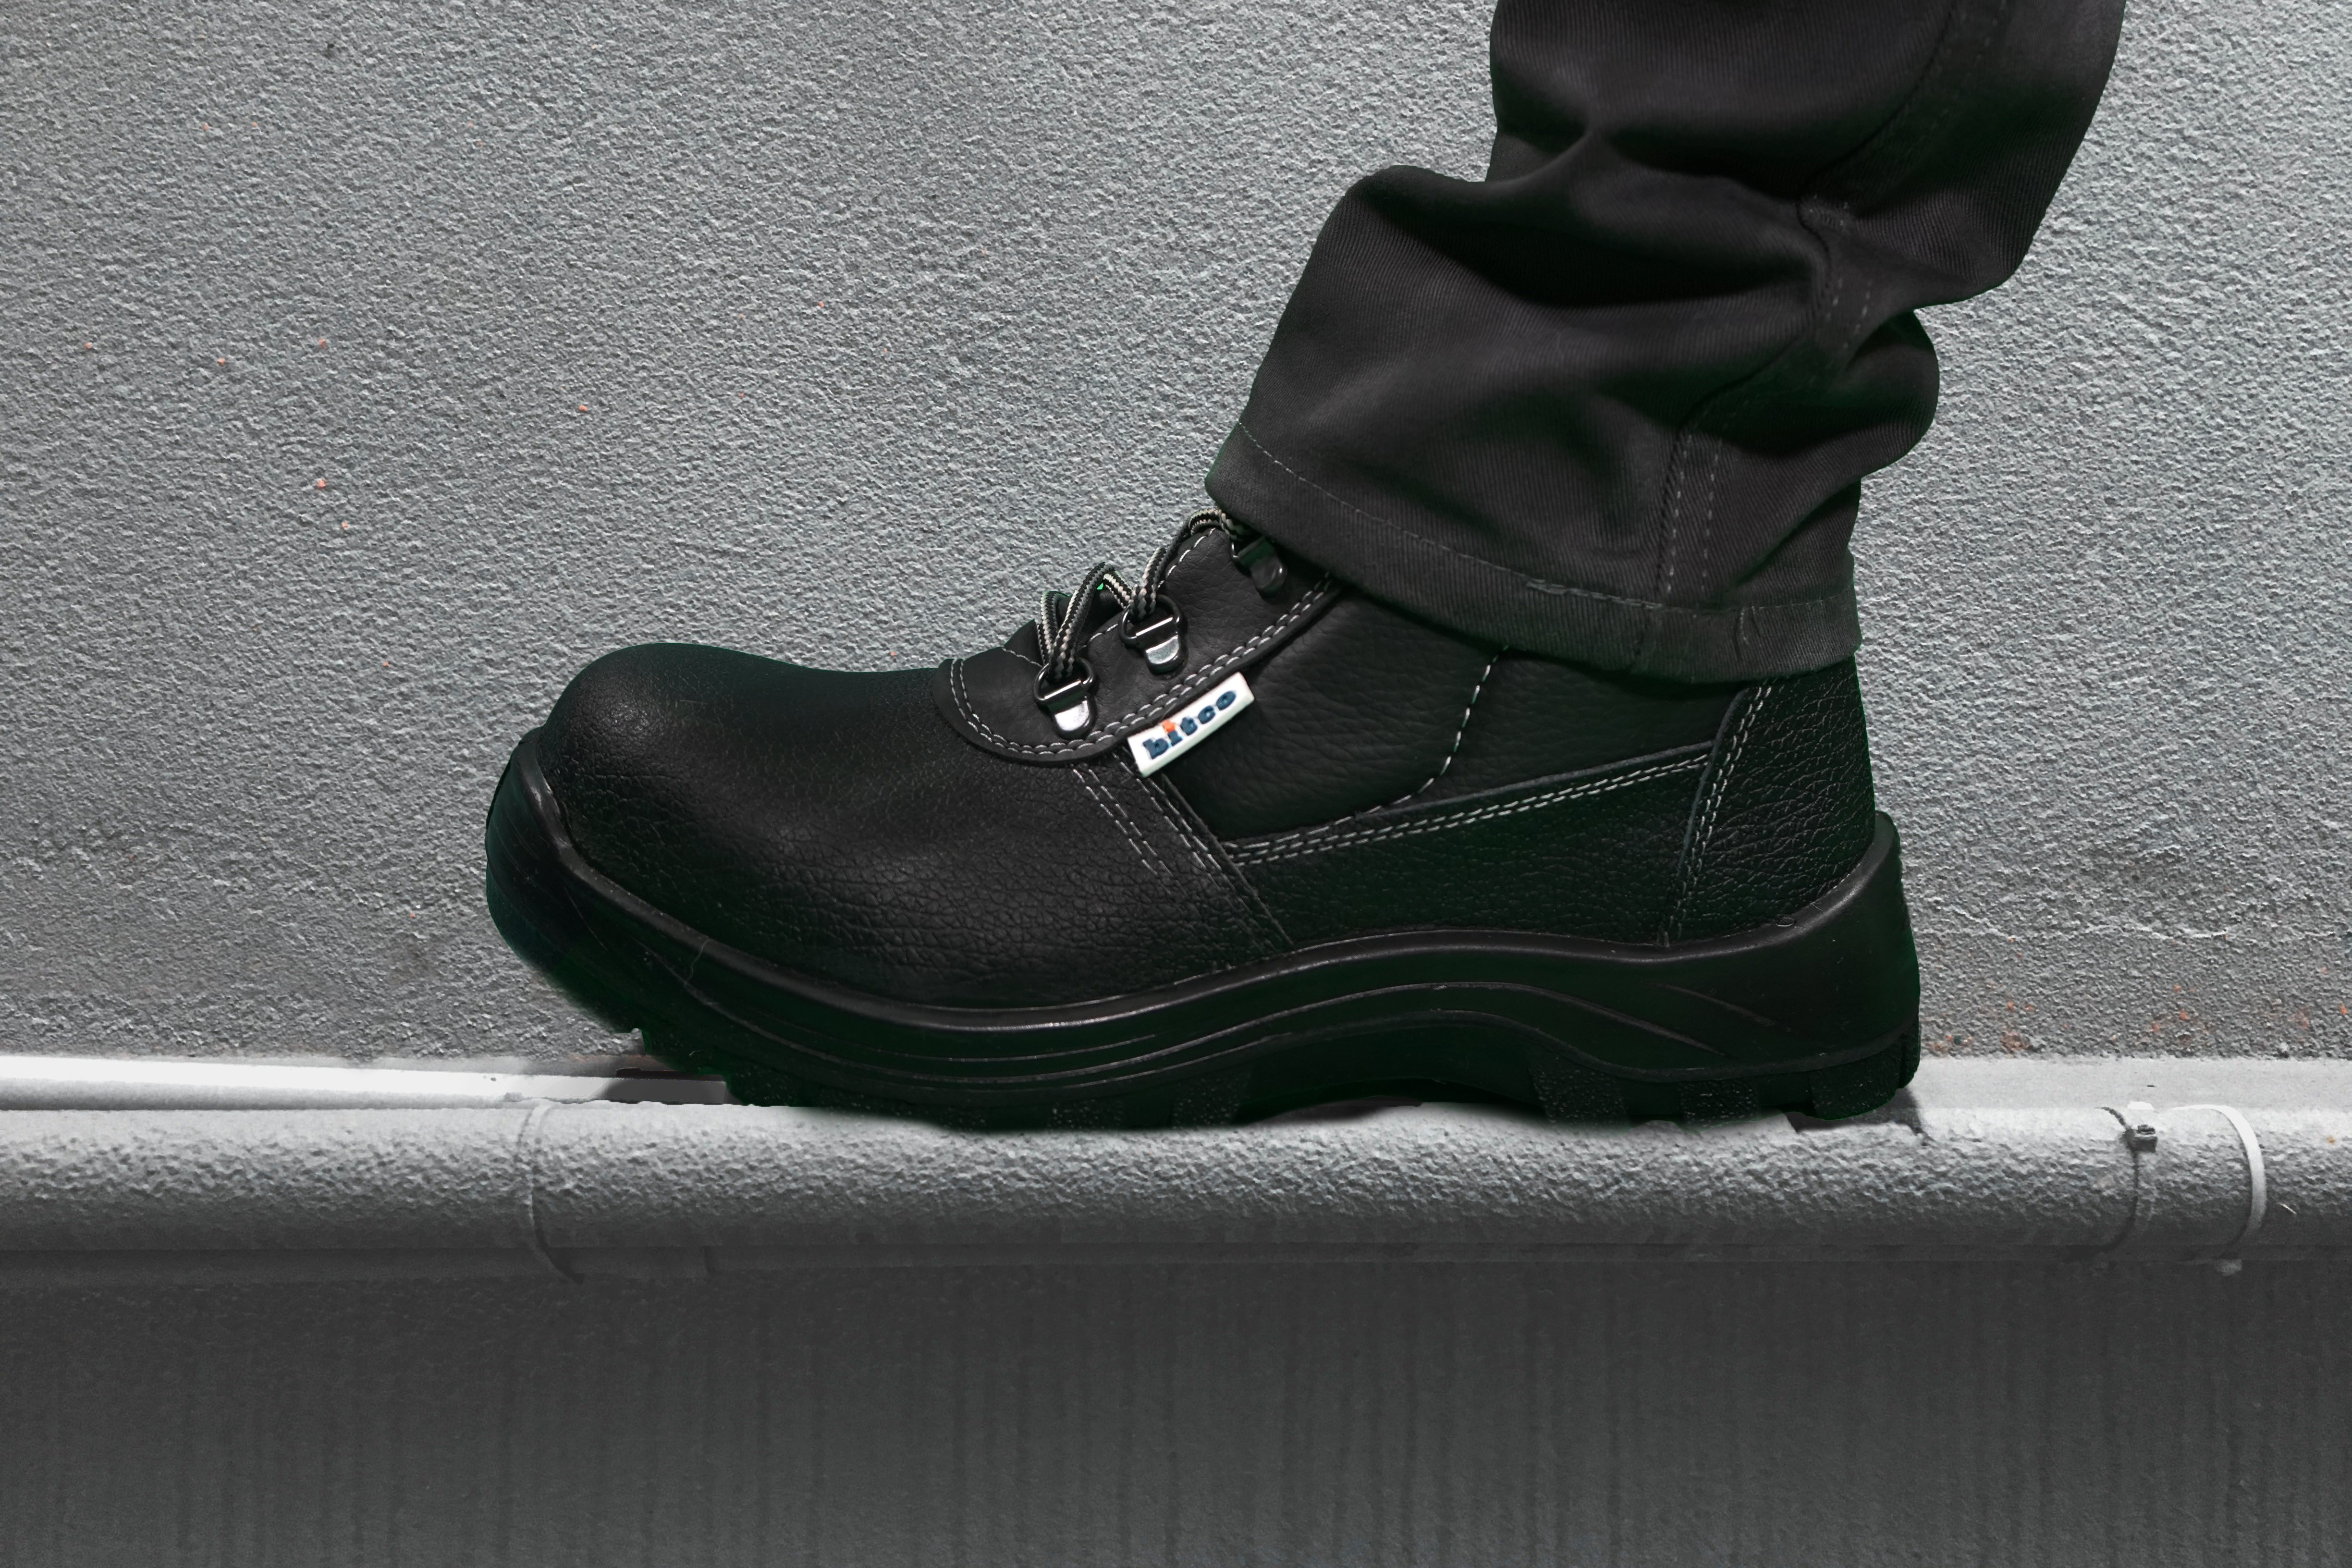 BTS12- Safety Boots